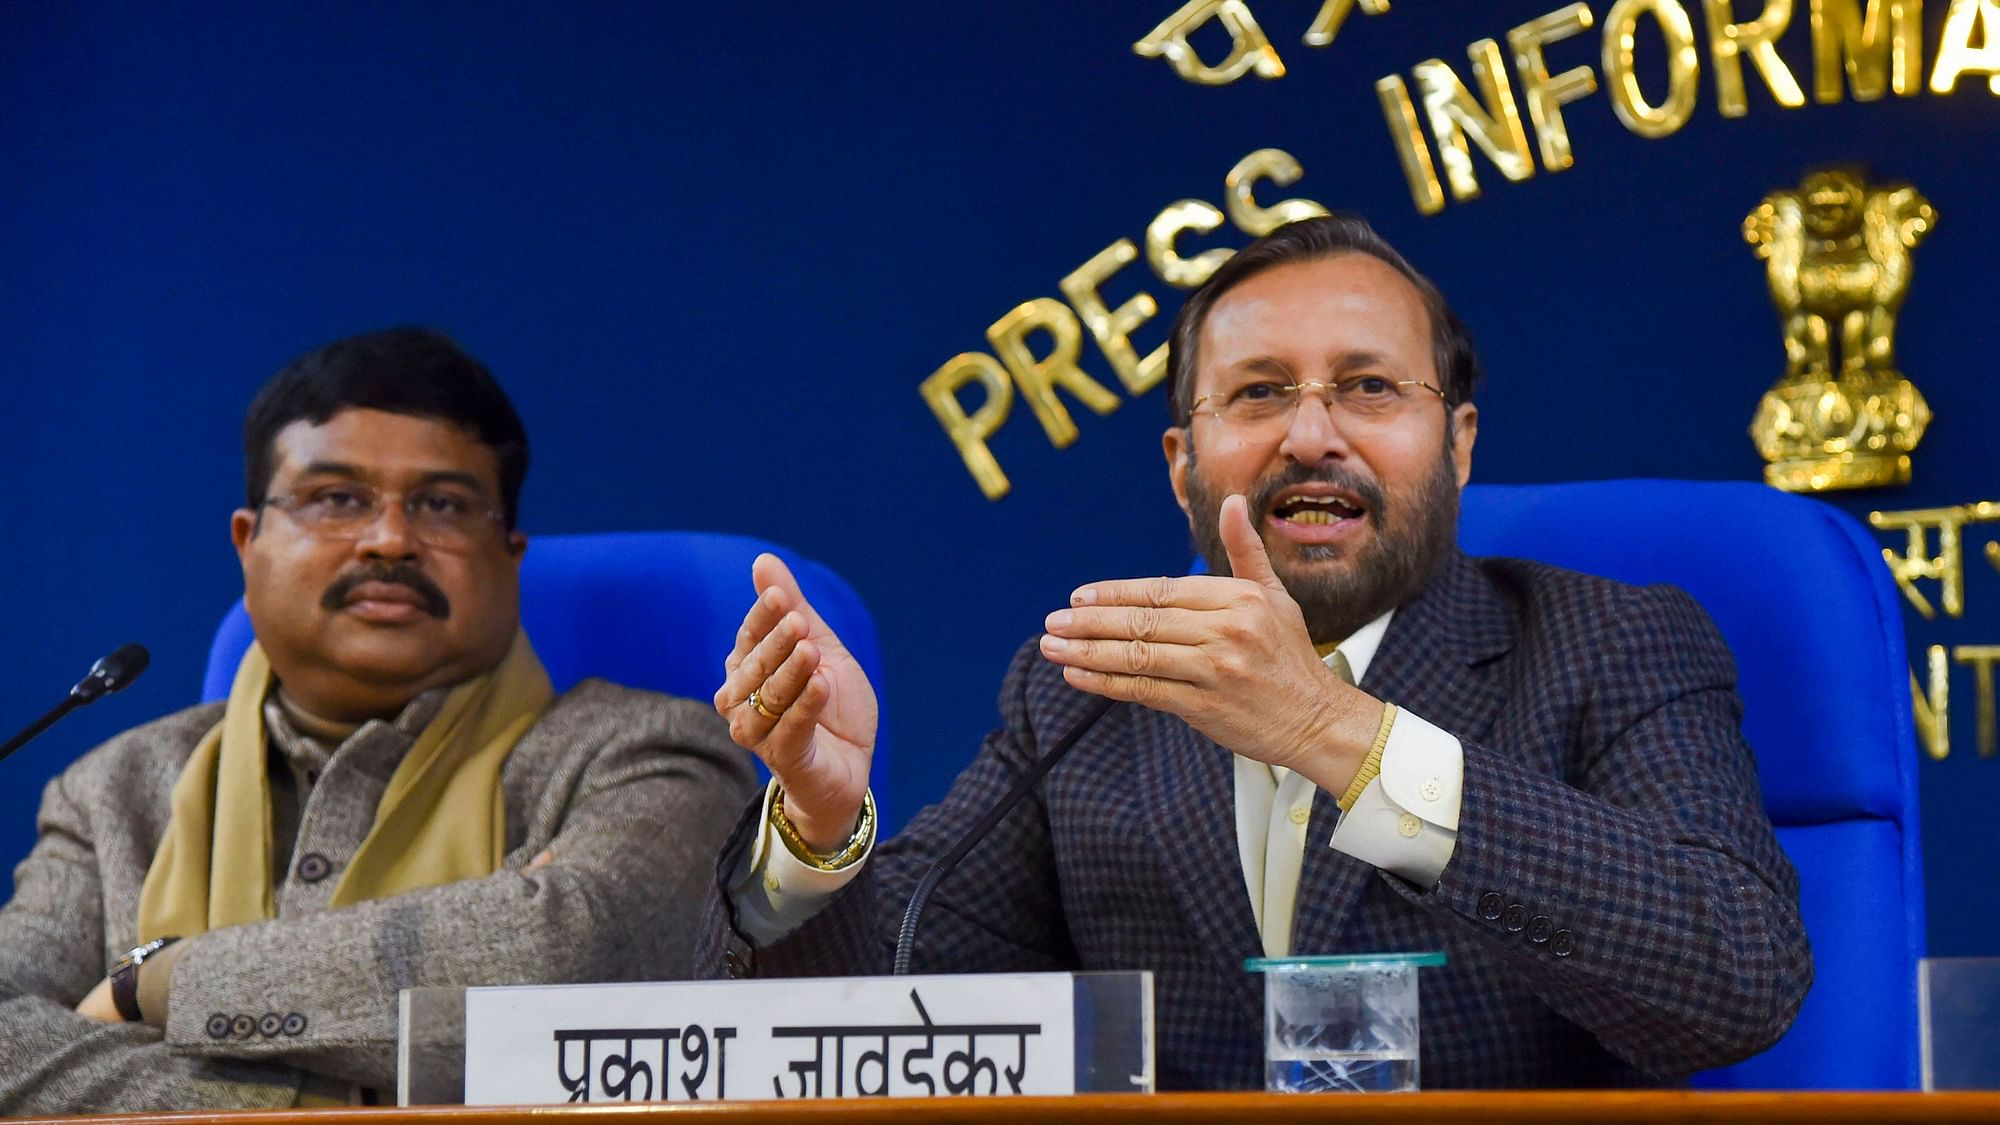 'Questions on Birth of Parents Are Optional': Javadekar on NPR